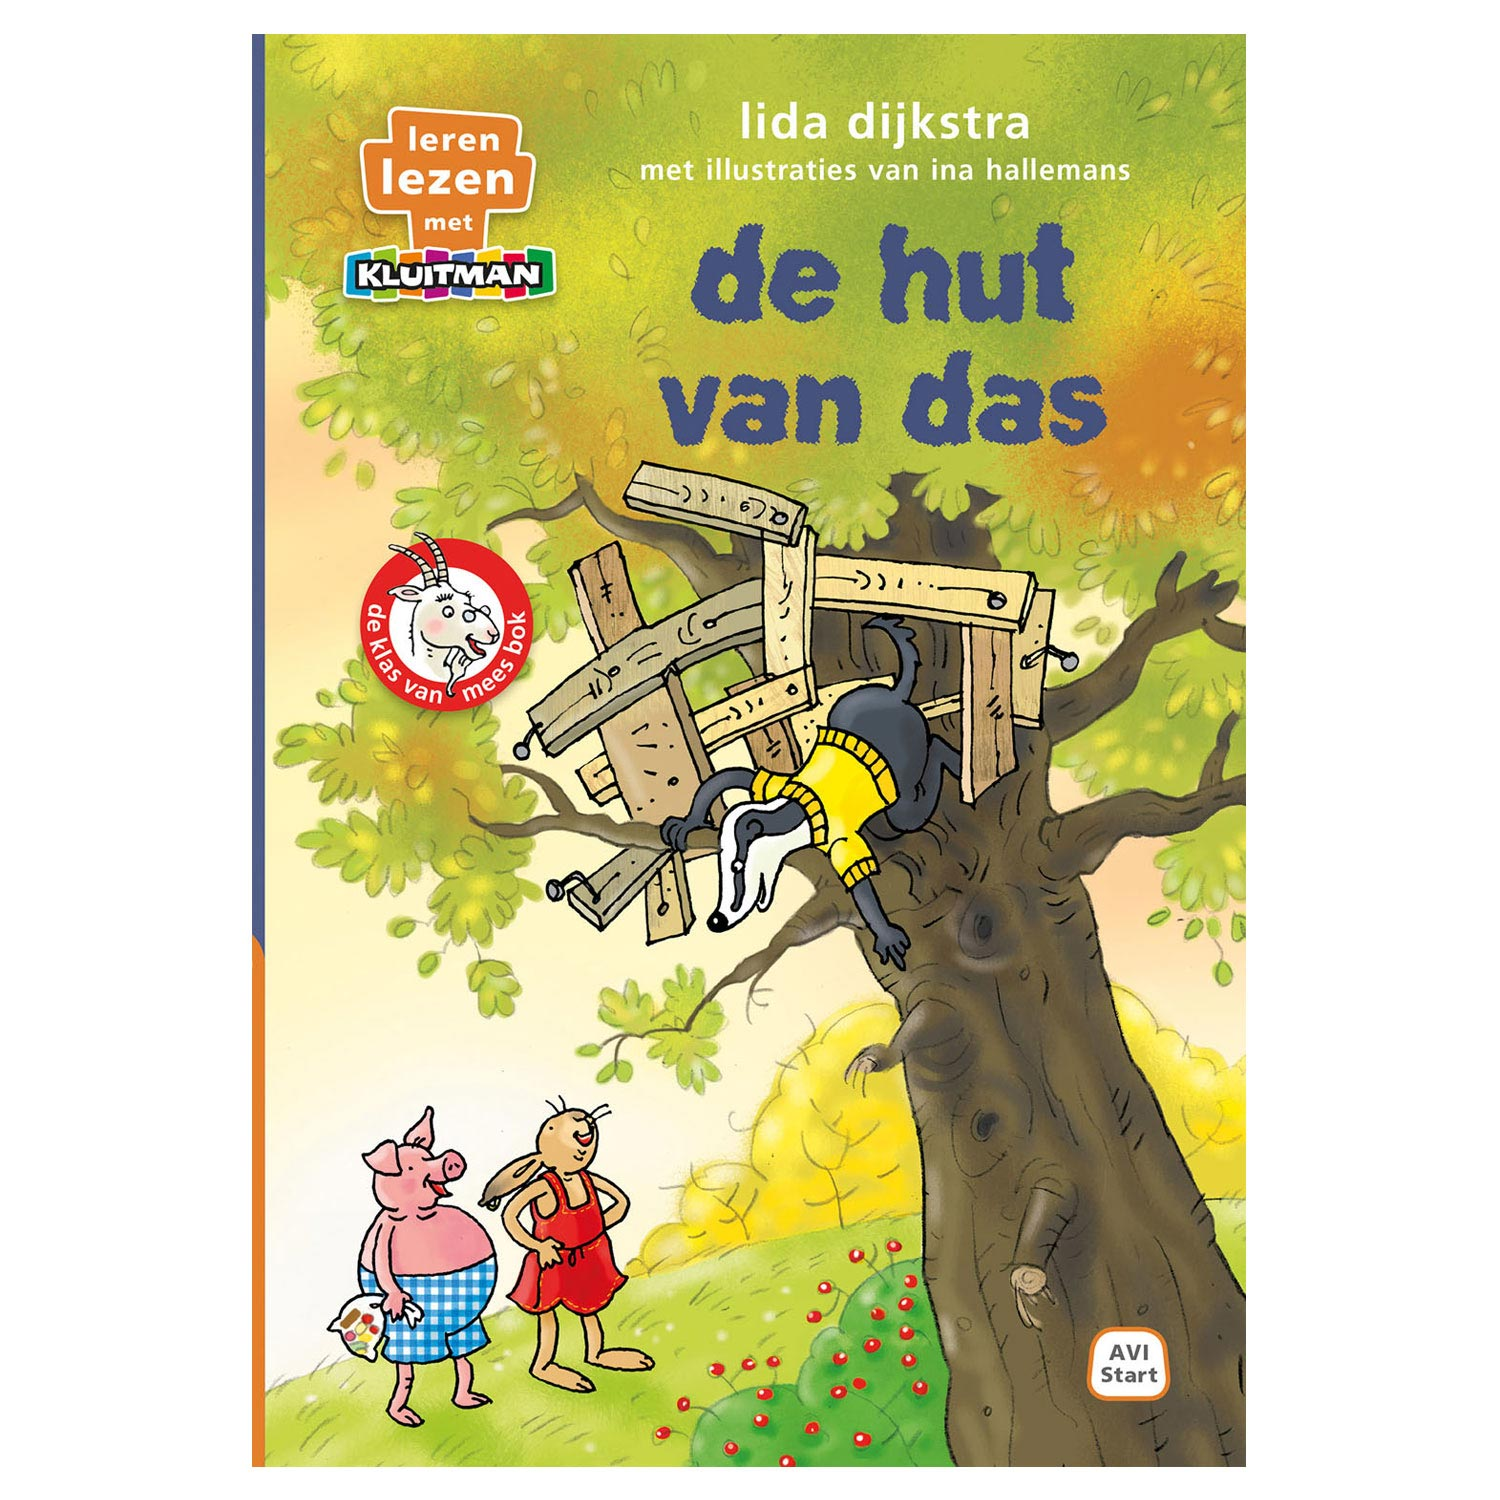 De hut van das - AVI Start